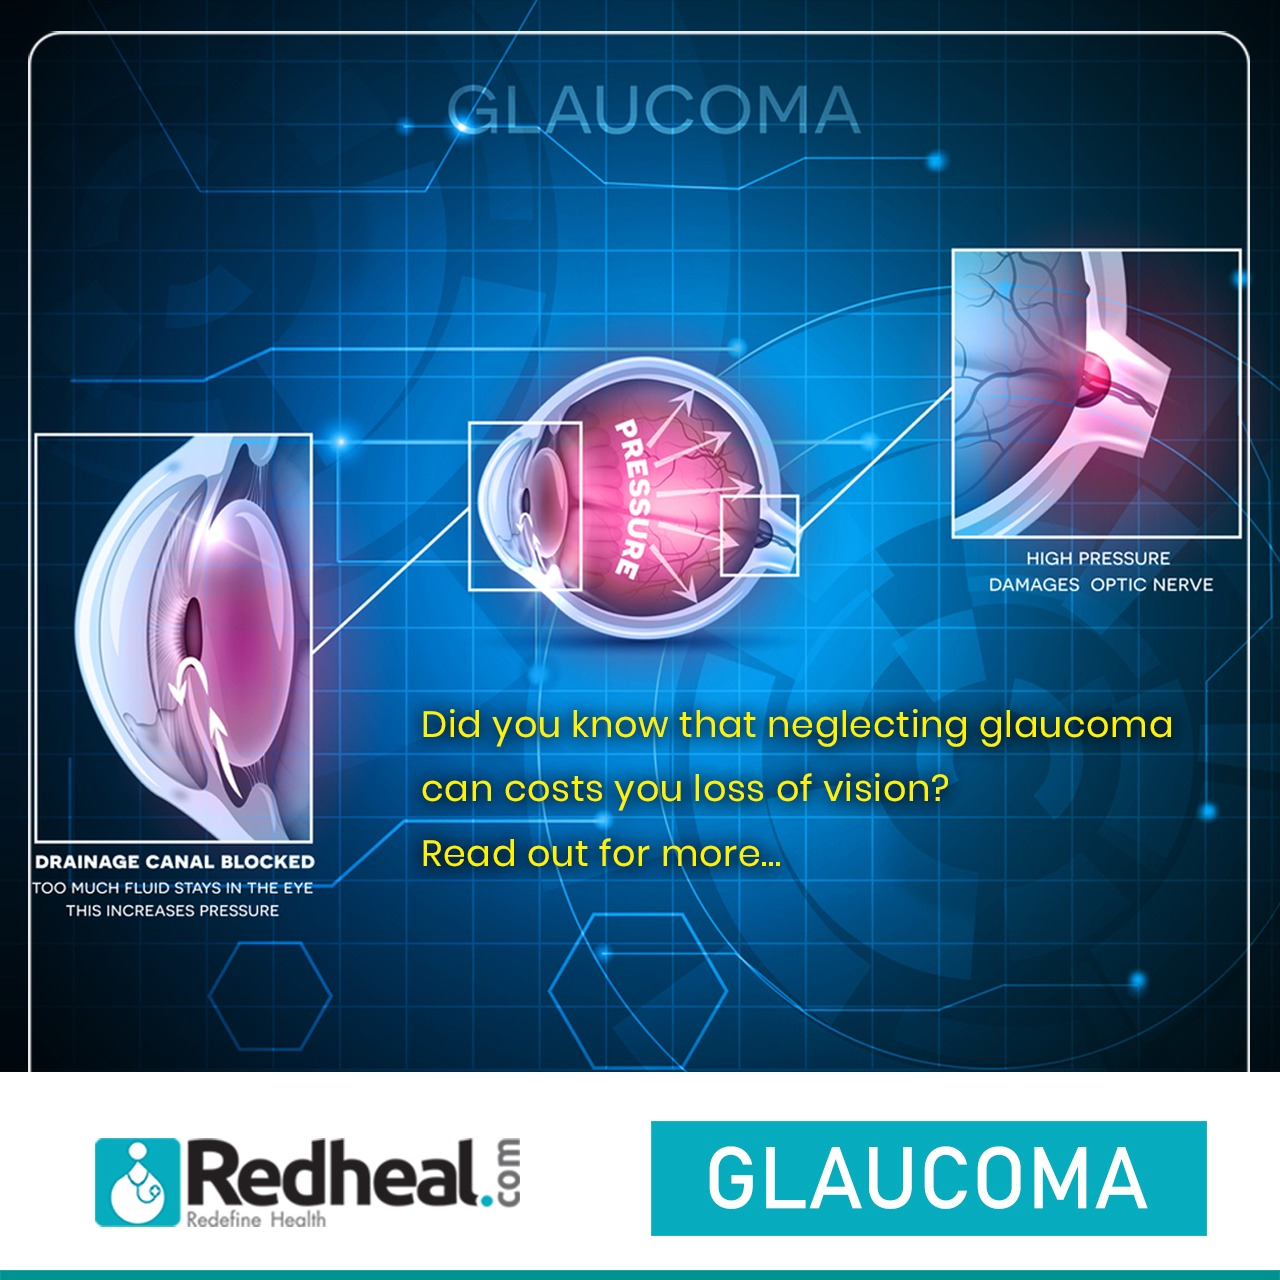 Symptoms and Prevention of Glaucoma